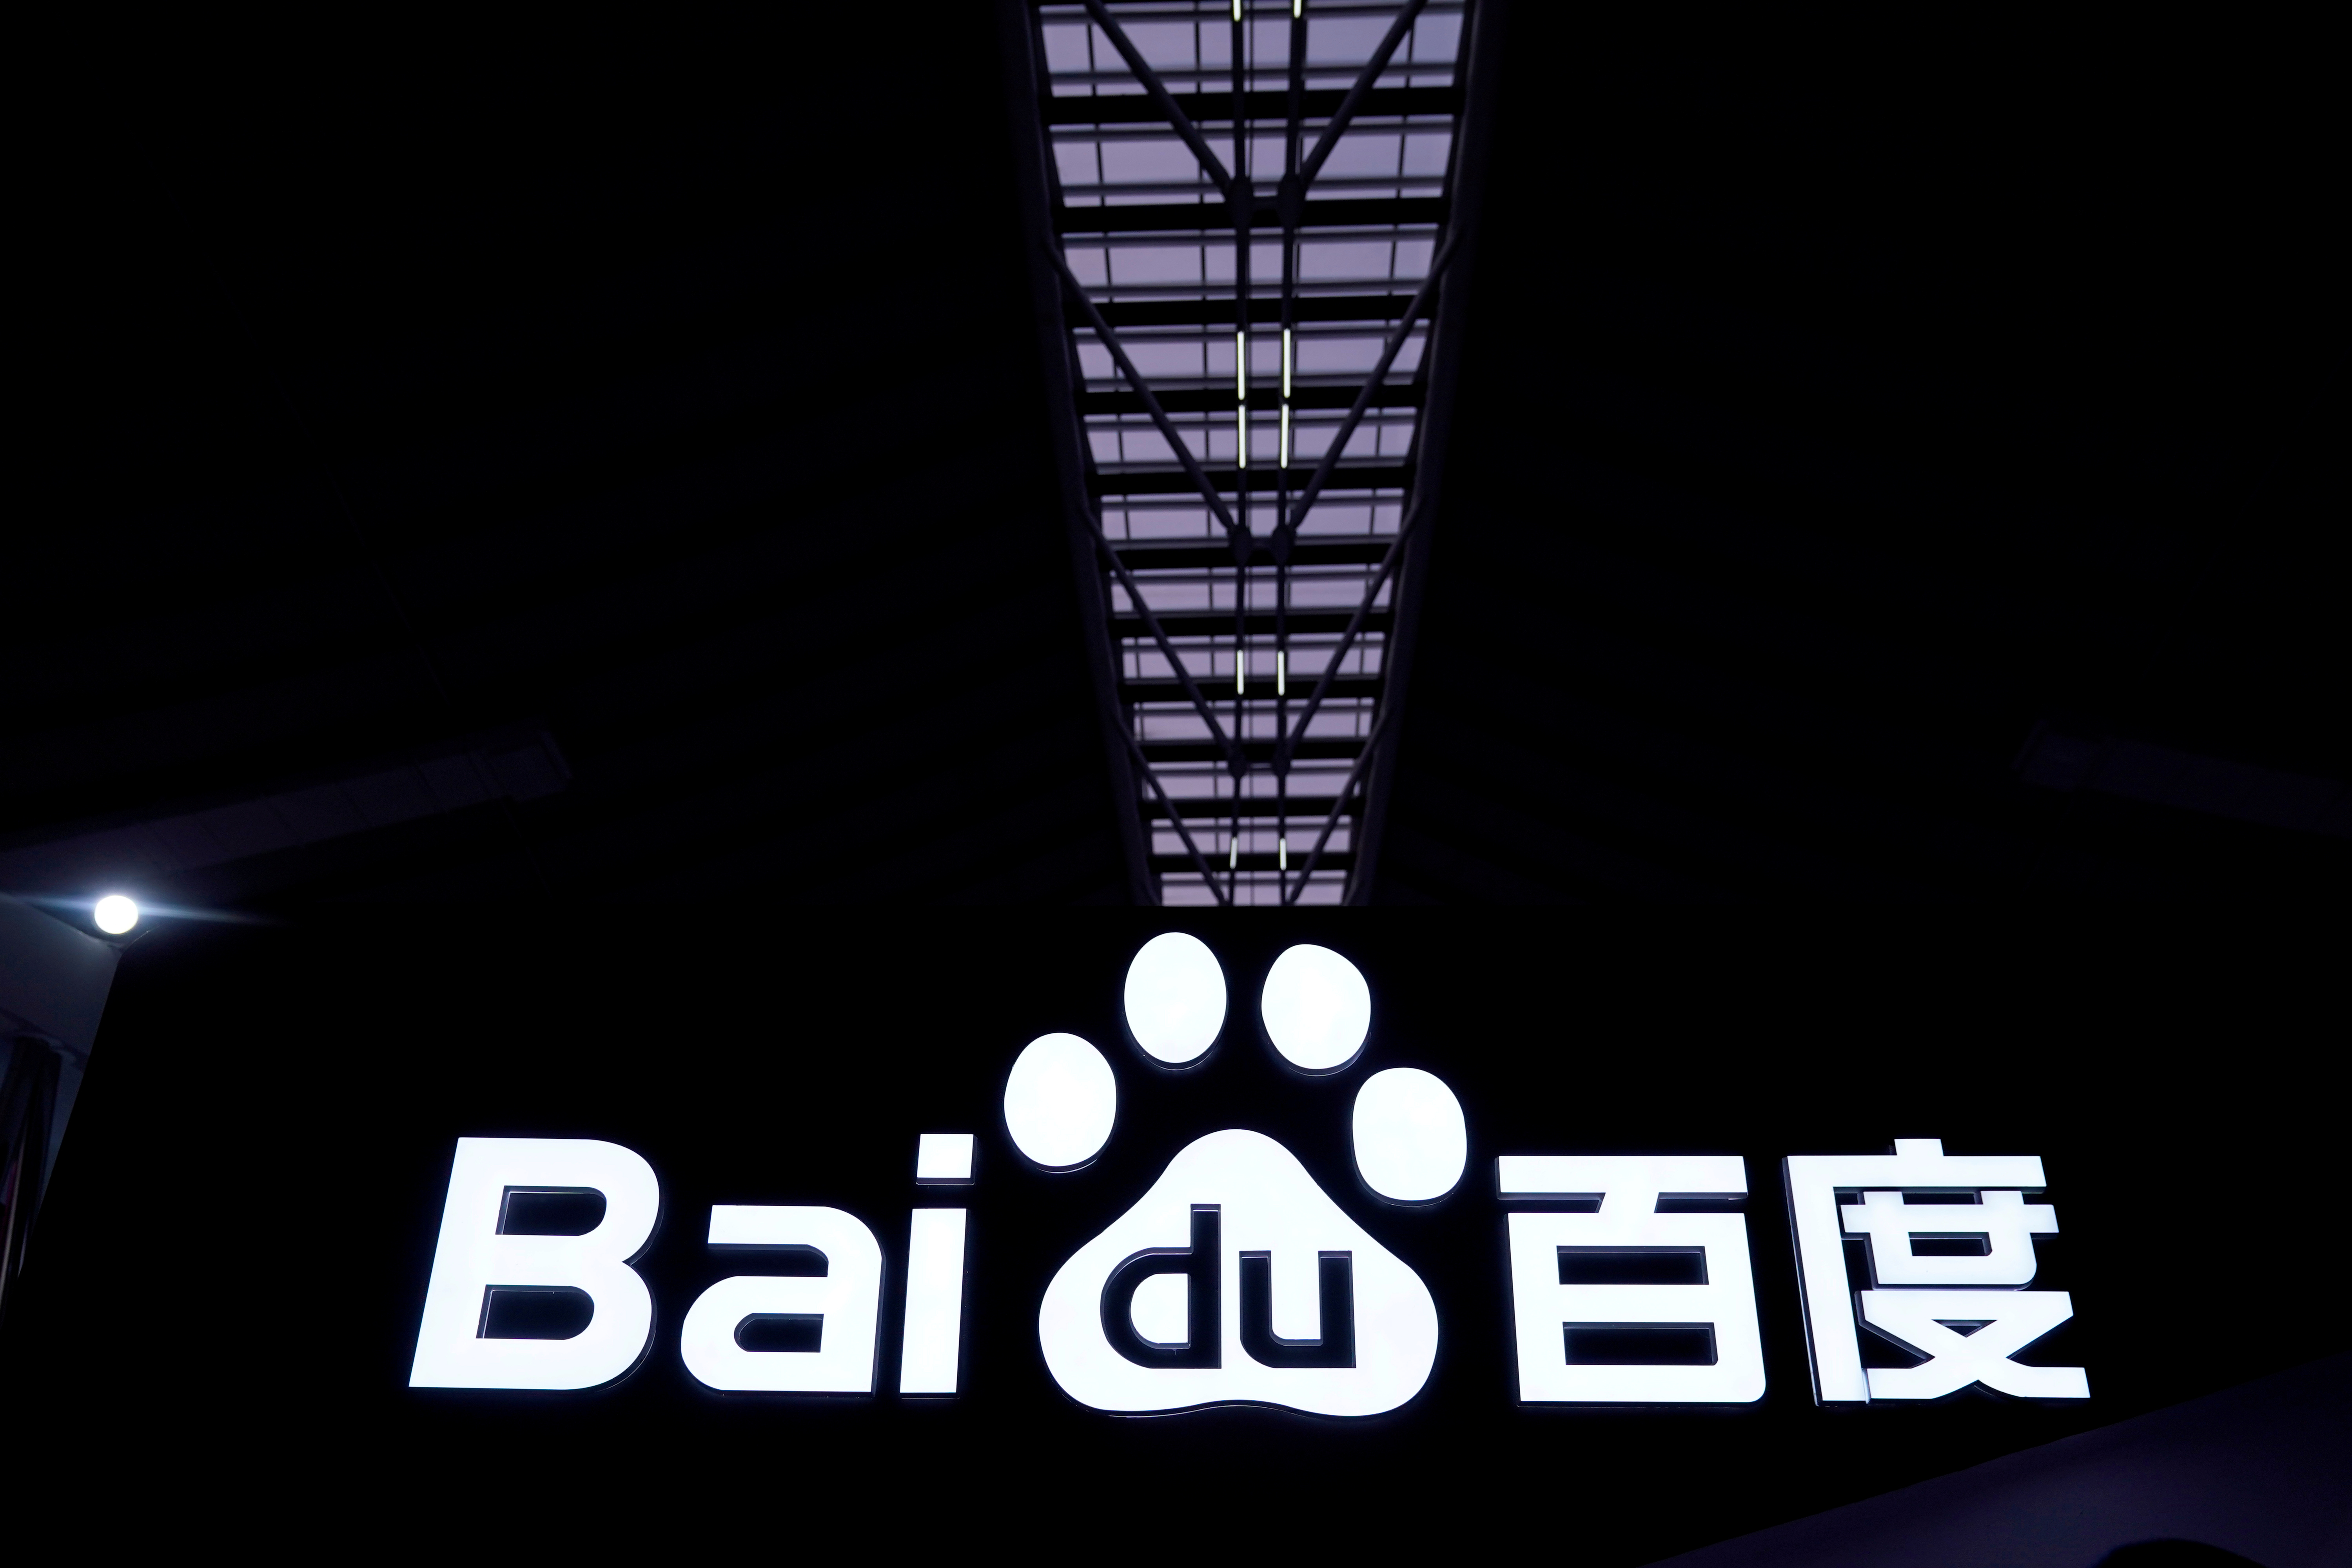 A Baidu sign is seen at the World Internet Conference (WIC) in Wuzhen, Zhejiang province, China, October 20, 2019. REUTERS/Aly Song/File Photo